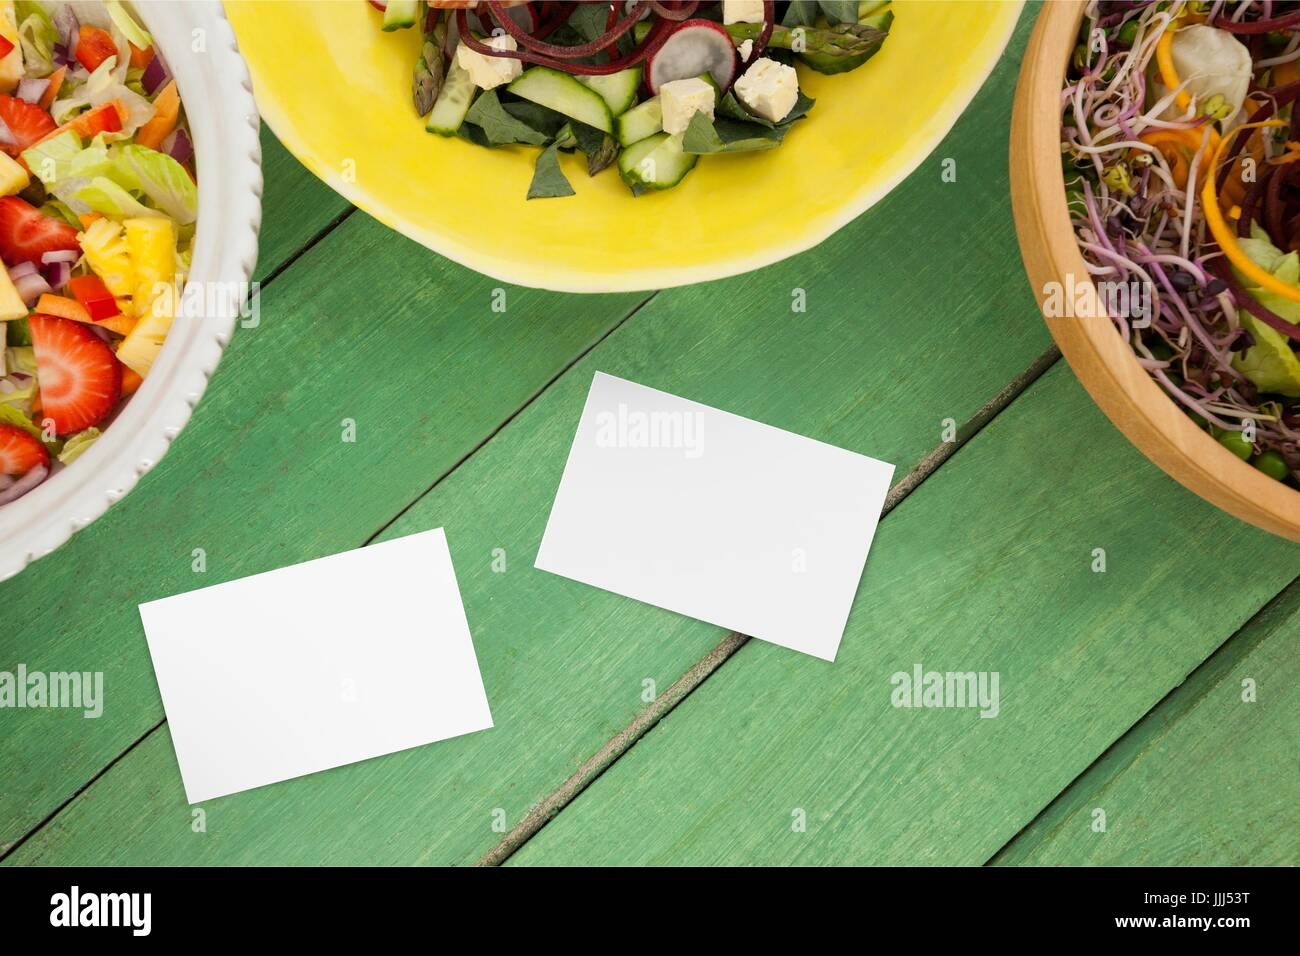 Bussiness cards on green wooden desk with food 3d - Stock Image